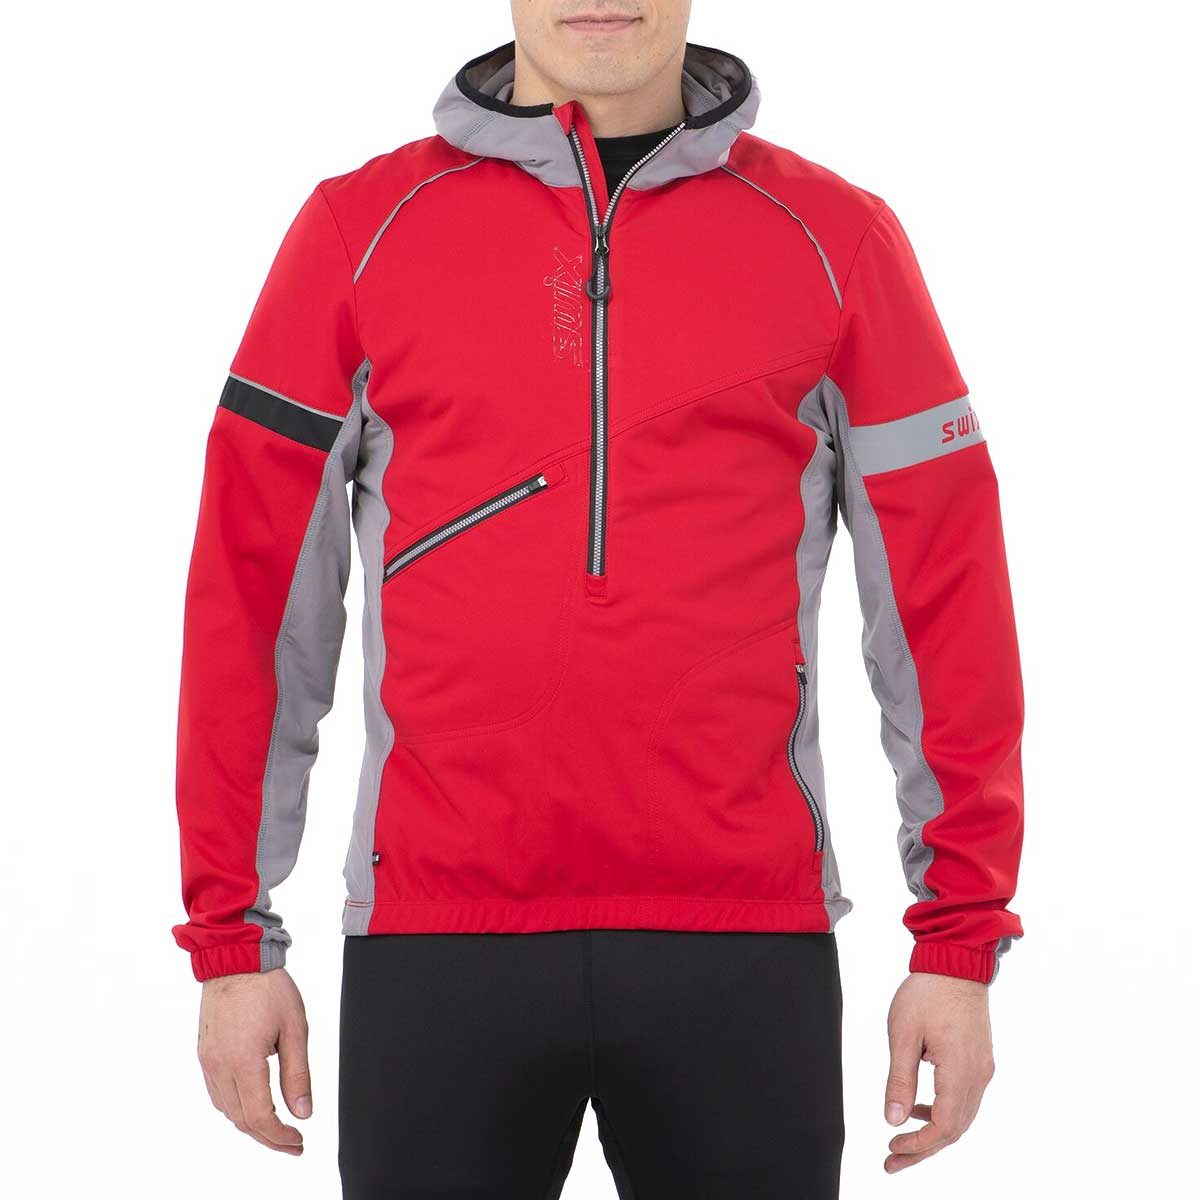 Swix Men's Nybo Pull Over Jacket in Swix Red